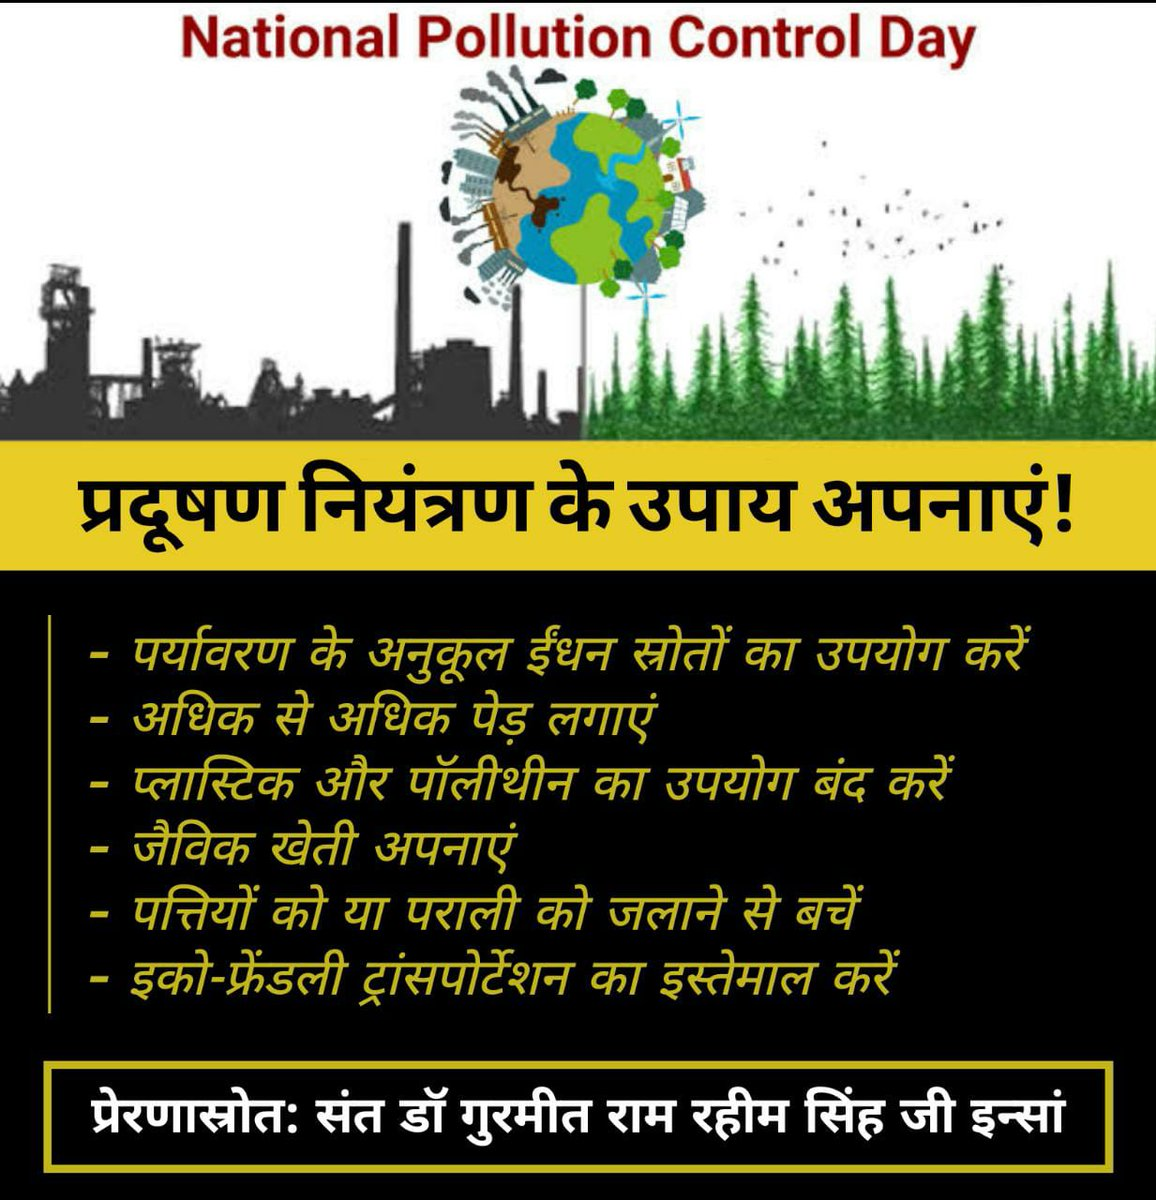 Today is #NationalPollutionControlDay Let's pledge to never create pollution in the environment because it is harmful for health.  #NationalPollutionControlDay2020 #NationalDayOfMourning #wednesdaythought #Wednesdayvibe #wednesdaywallpaper #wednesdaywallpaper